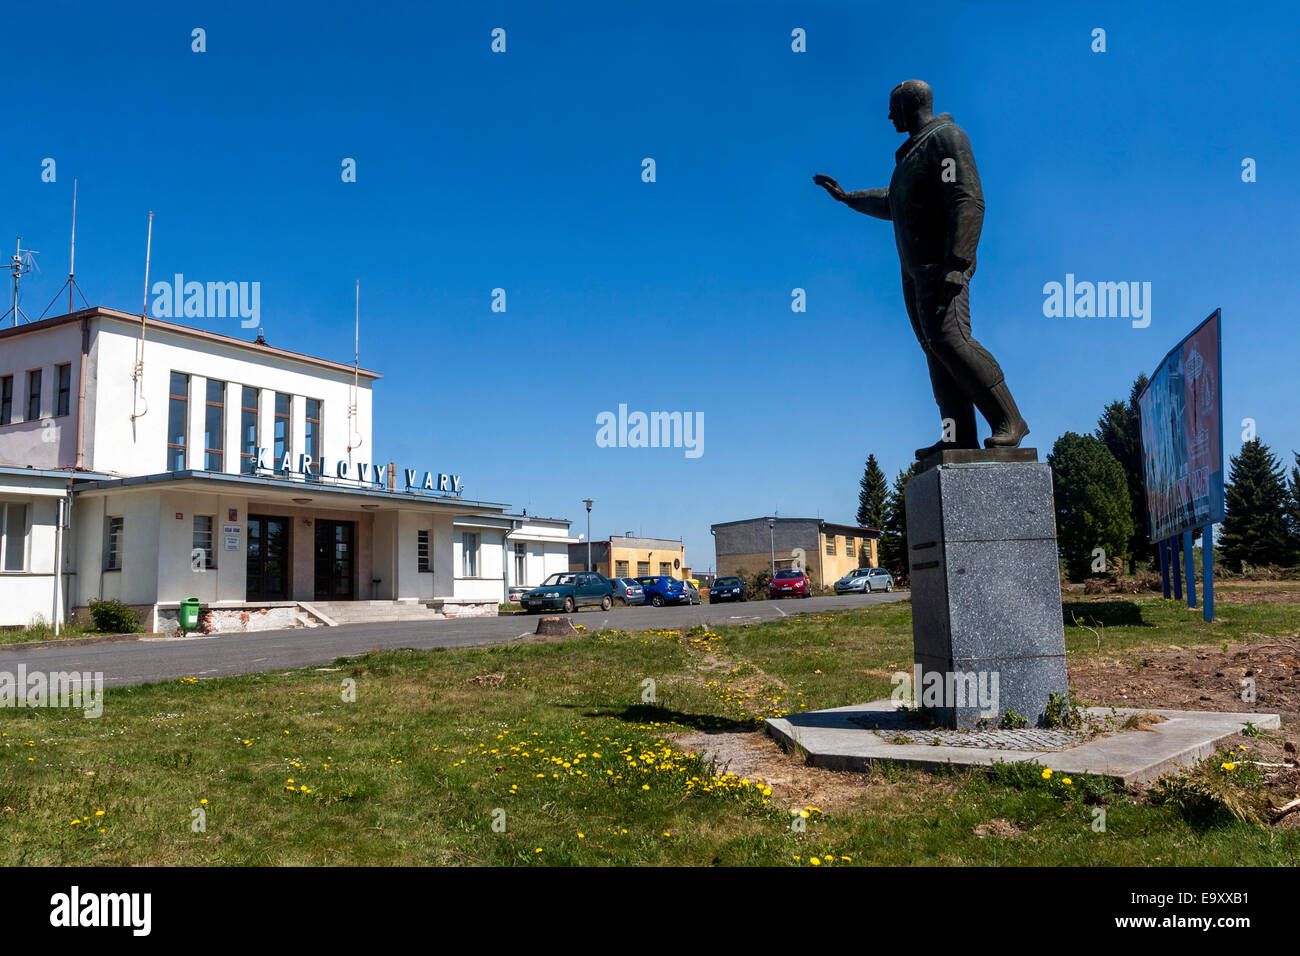 The first cosmonaut in the World Yuri Gaga,rin, Airport in Karlovy Vary Czech Republic - Stock Image